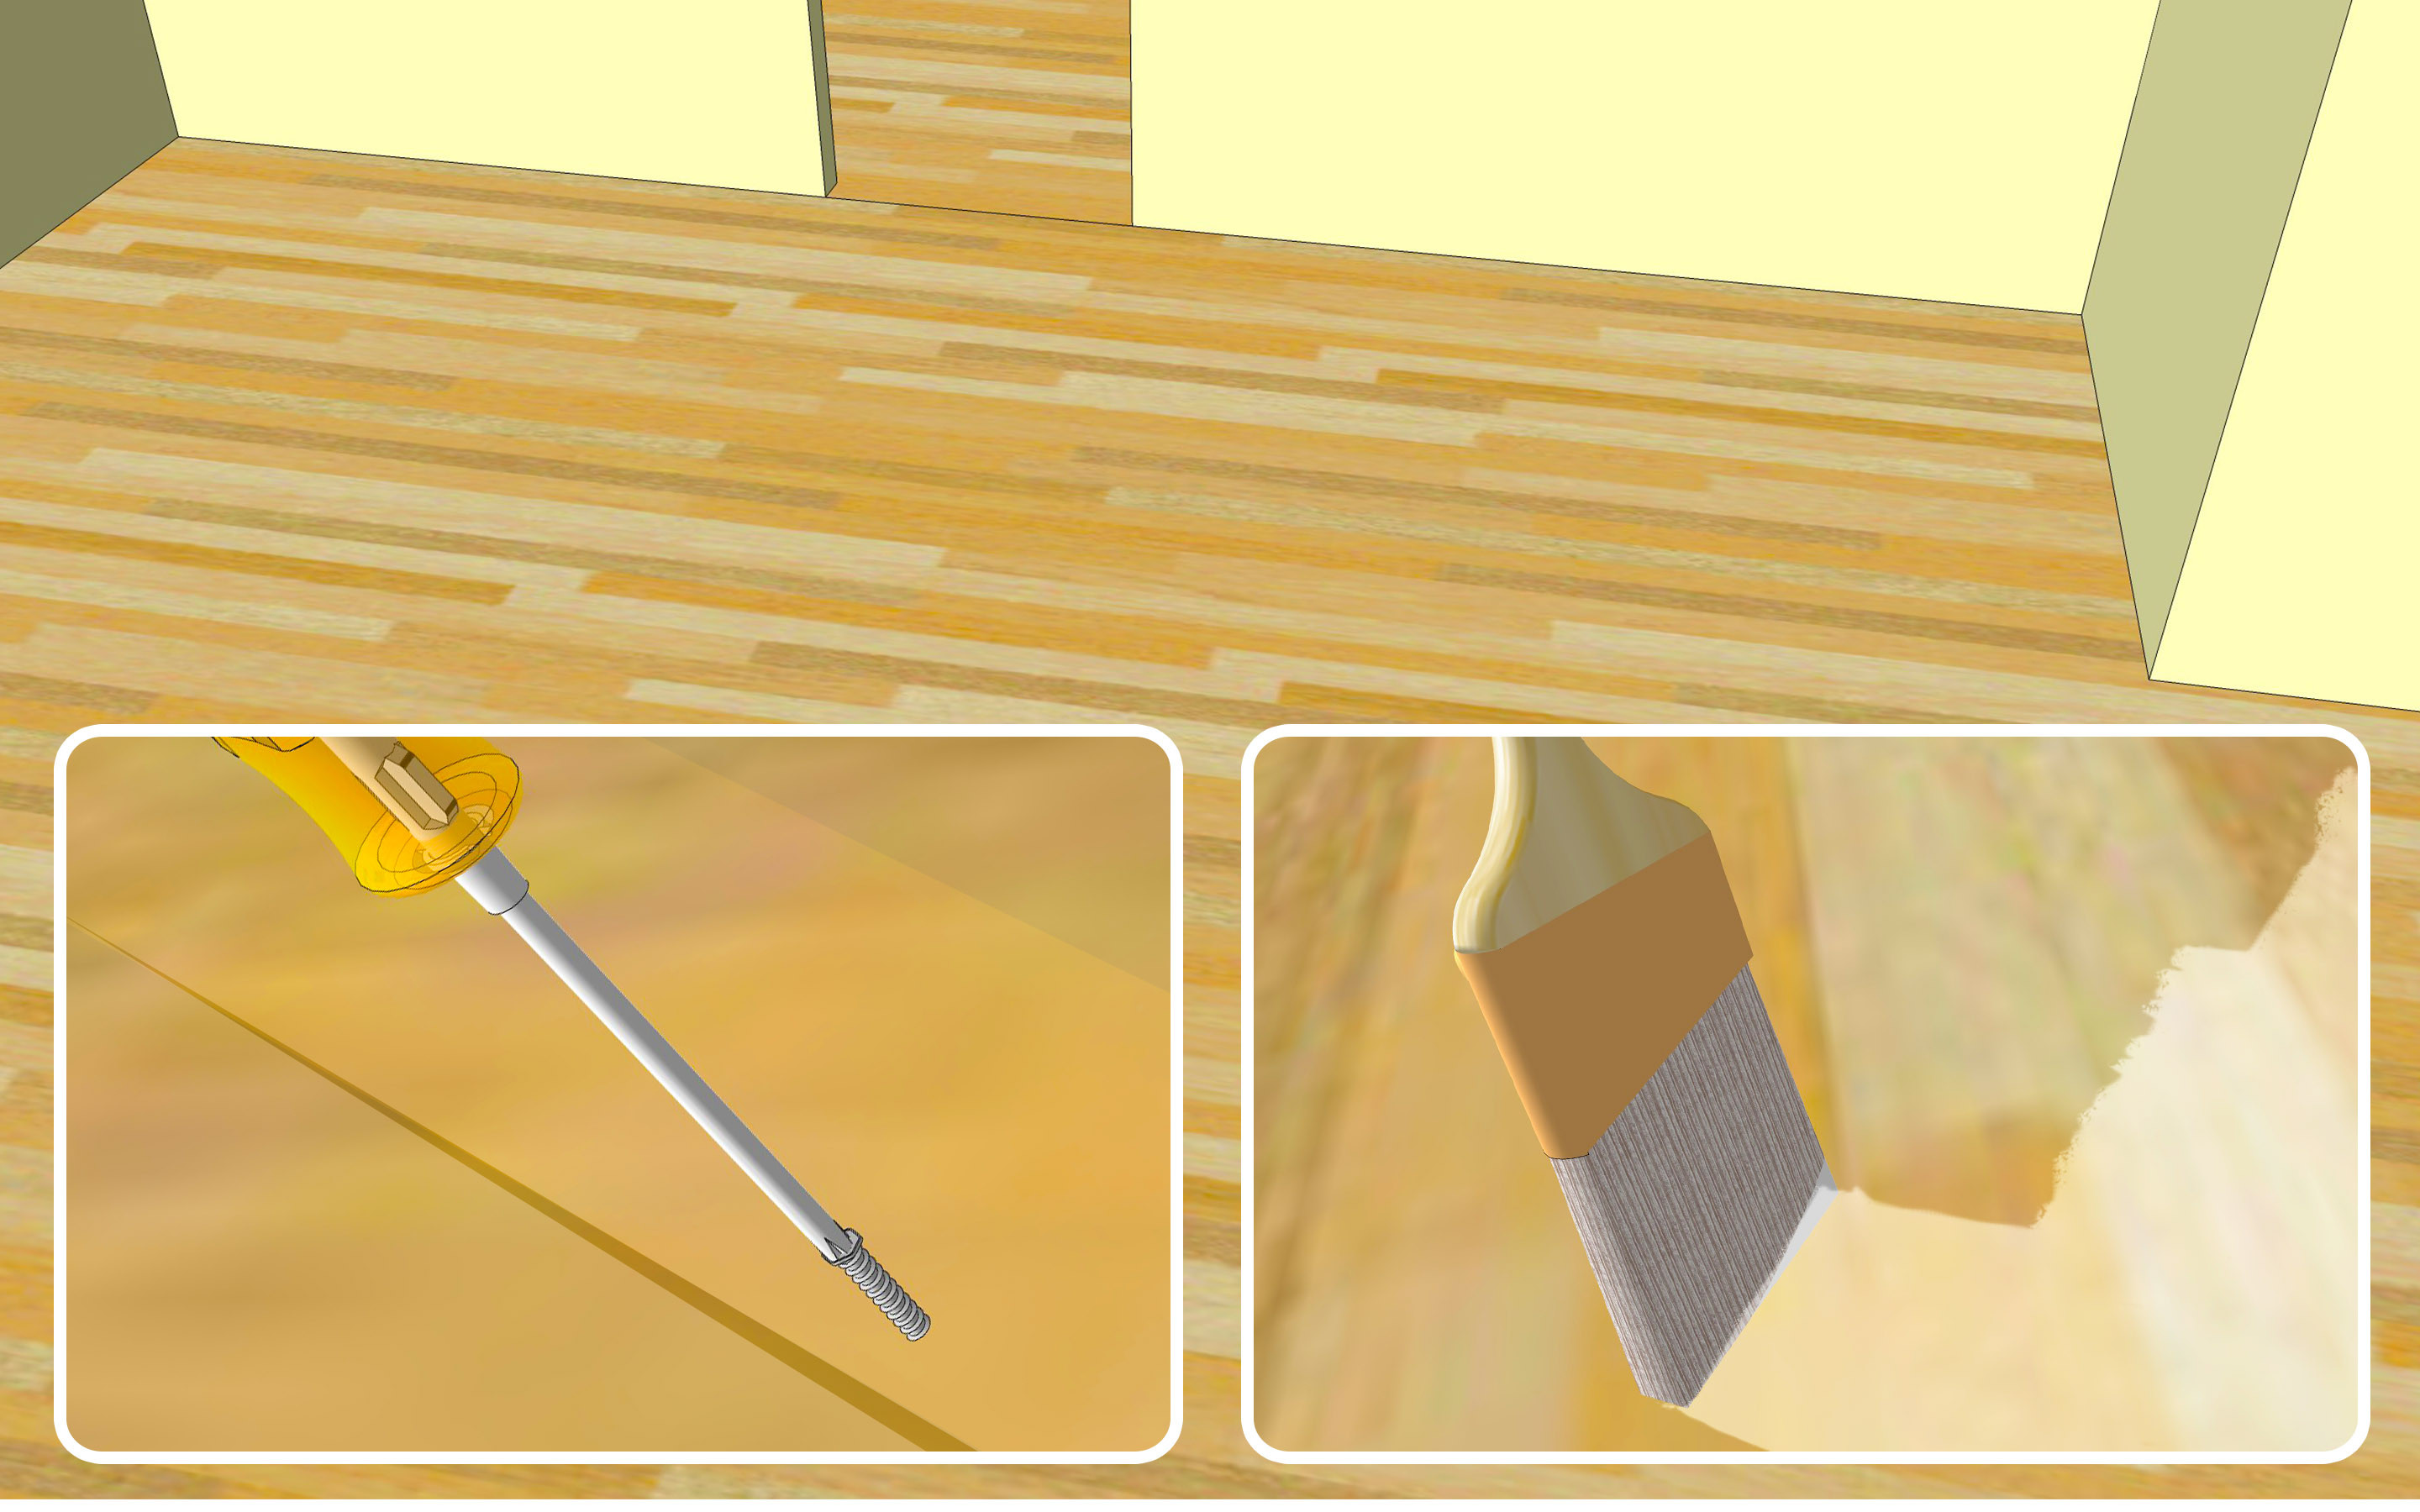 how much does it cost to replace hardwood floors of how to take out carpet 13 steps with pictures wikihow for take out carpet step 13 version 2